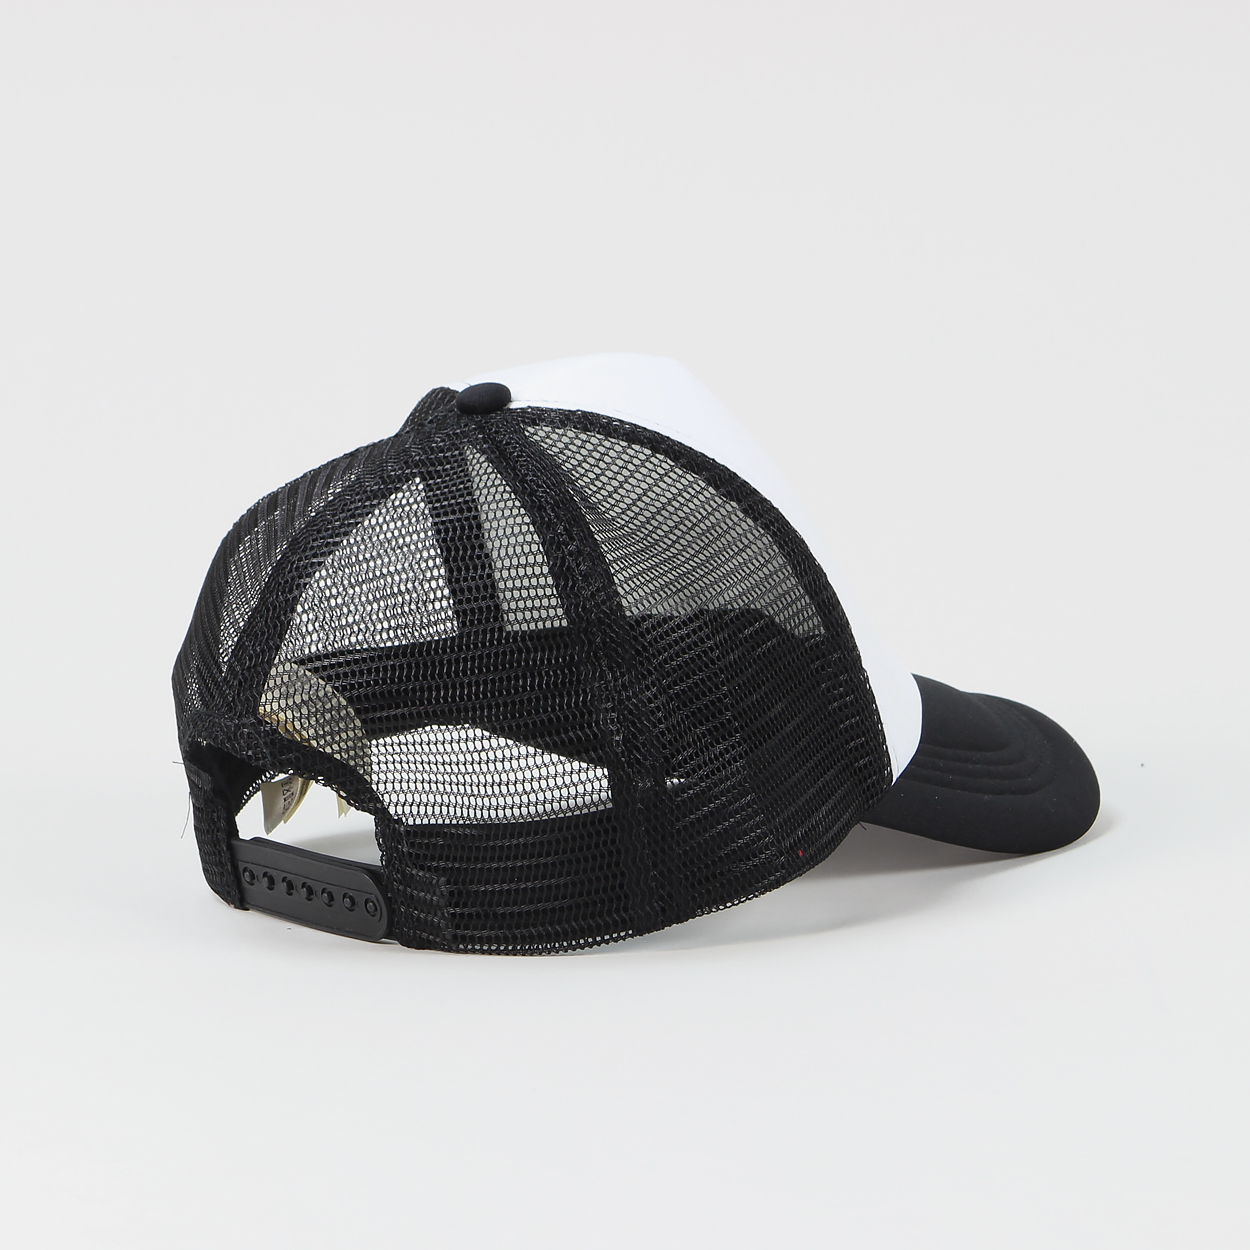 e67883bab69 Lee s mesh trucker cap is a traditional high crown hat with a one size fits  all snapback adjuster to the back and a large printed logo to the front.